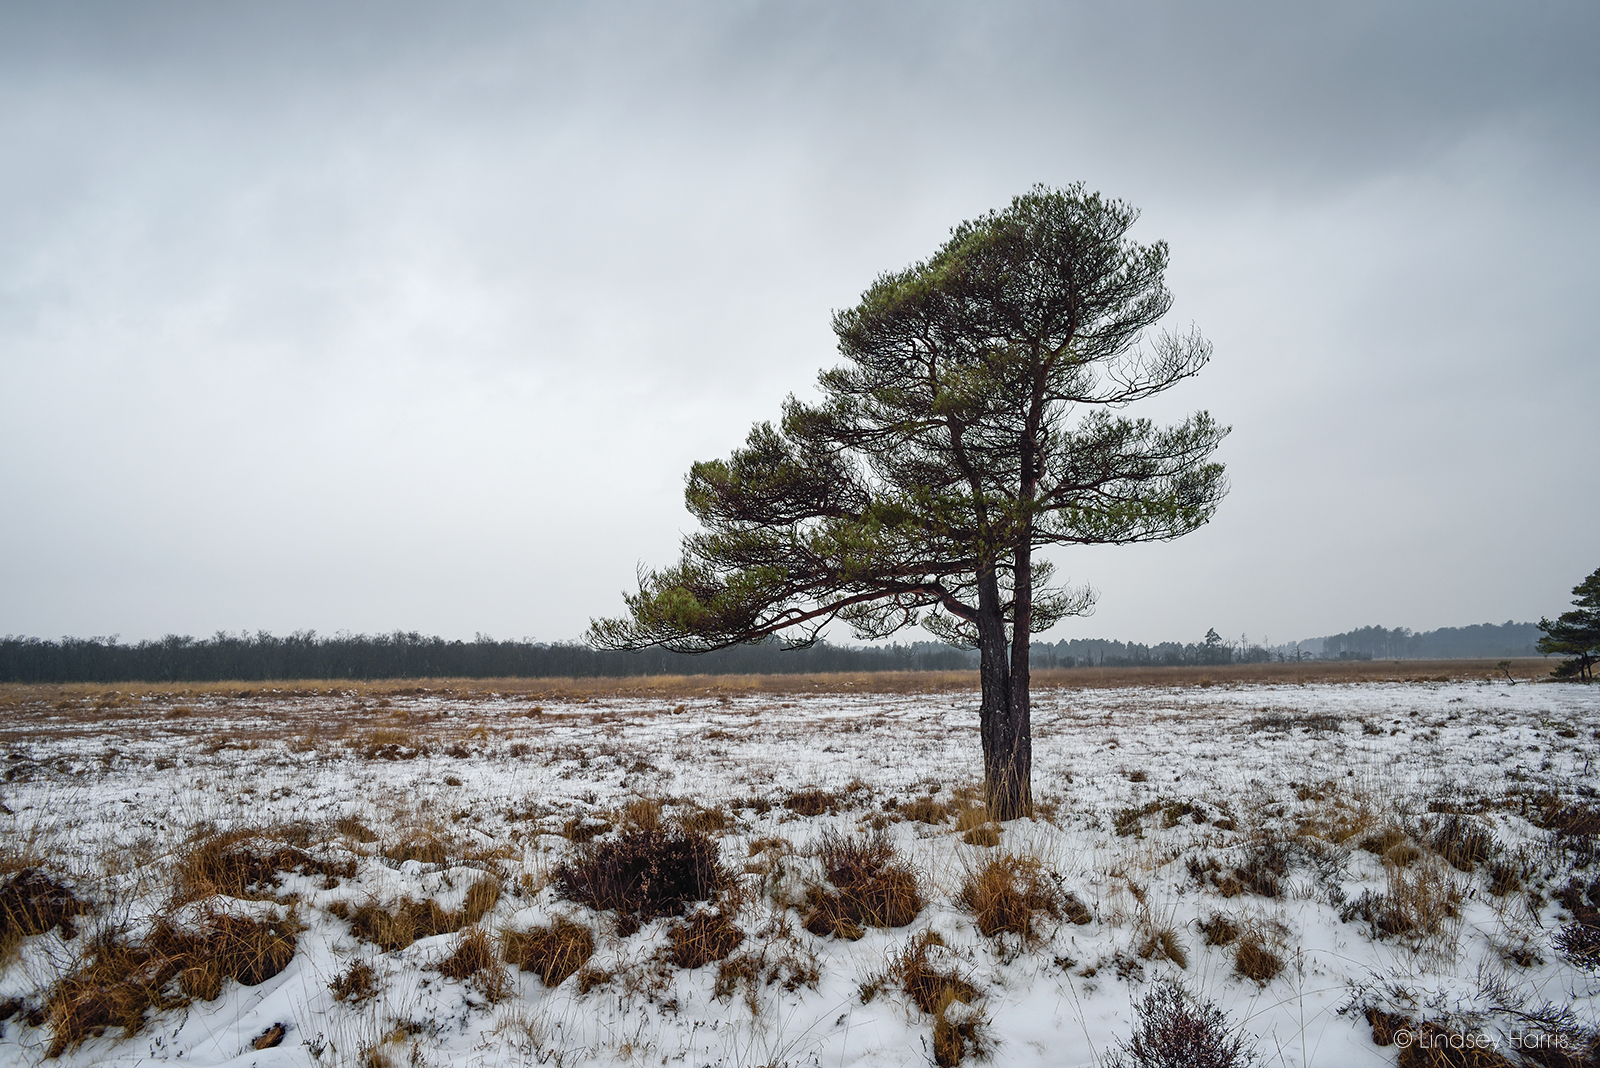 Pleasingly shaped tree in the snowy landscape at Morden Bog. National Nature Reserve.